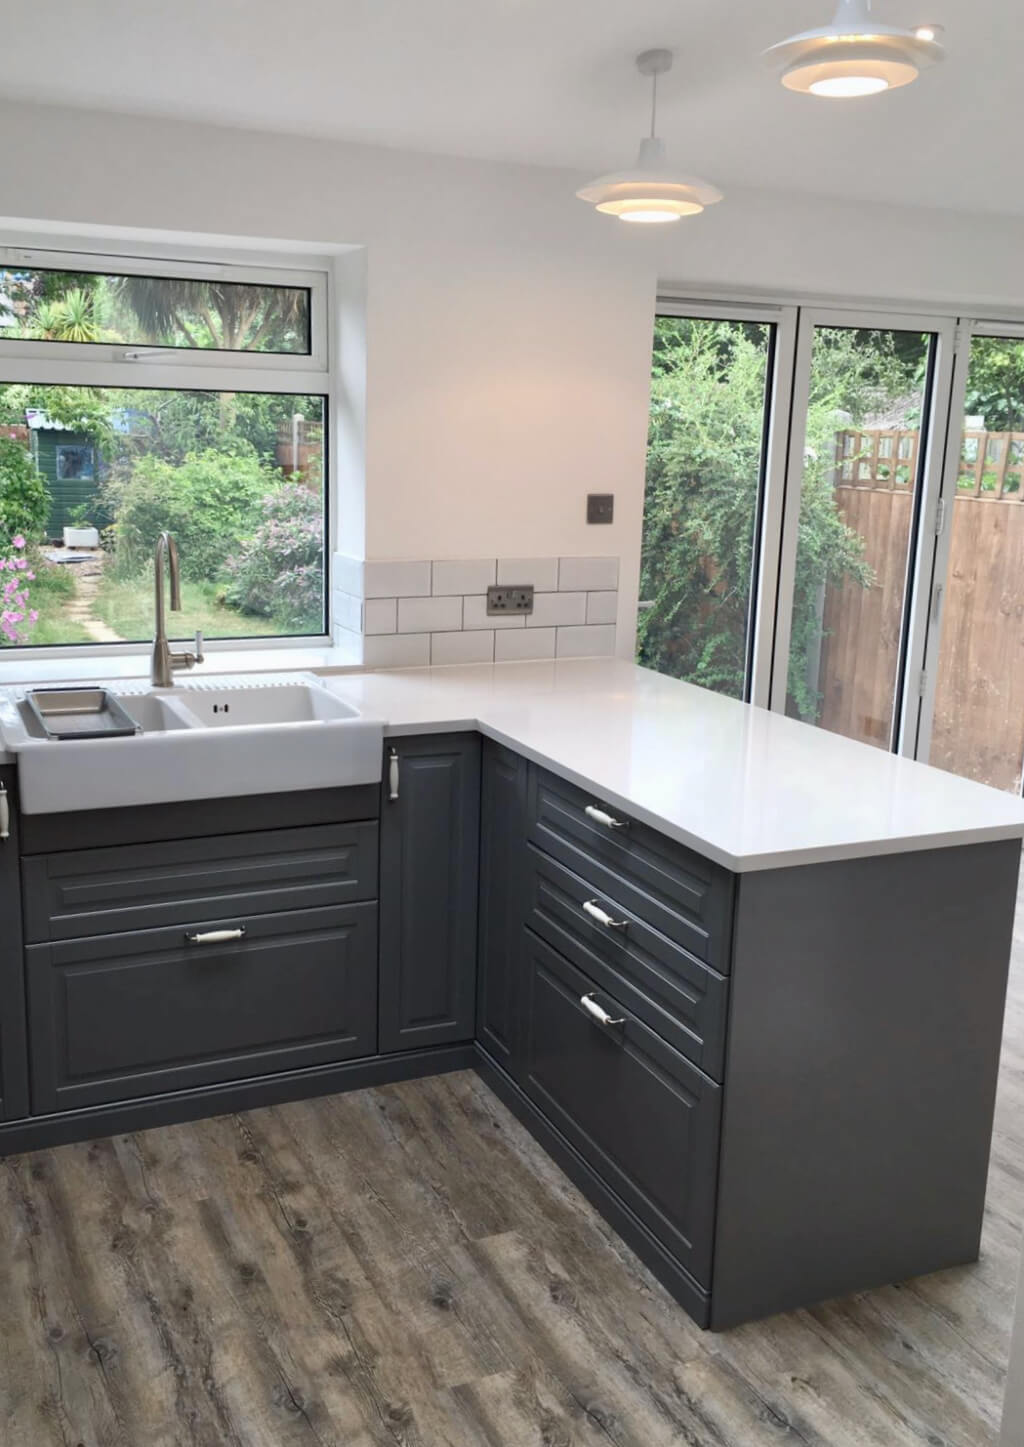 King's Construction | Ground Floor Extension Open Plan Kitchen | Lee Green, South London